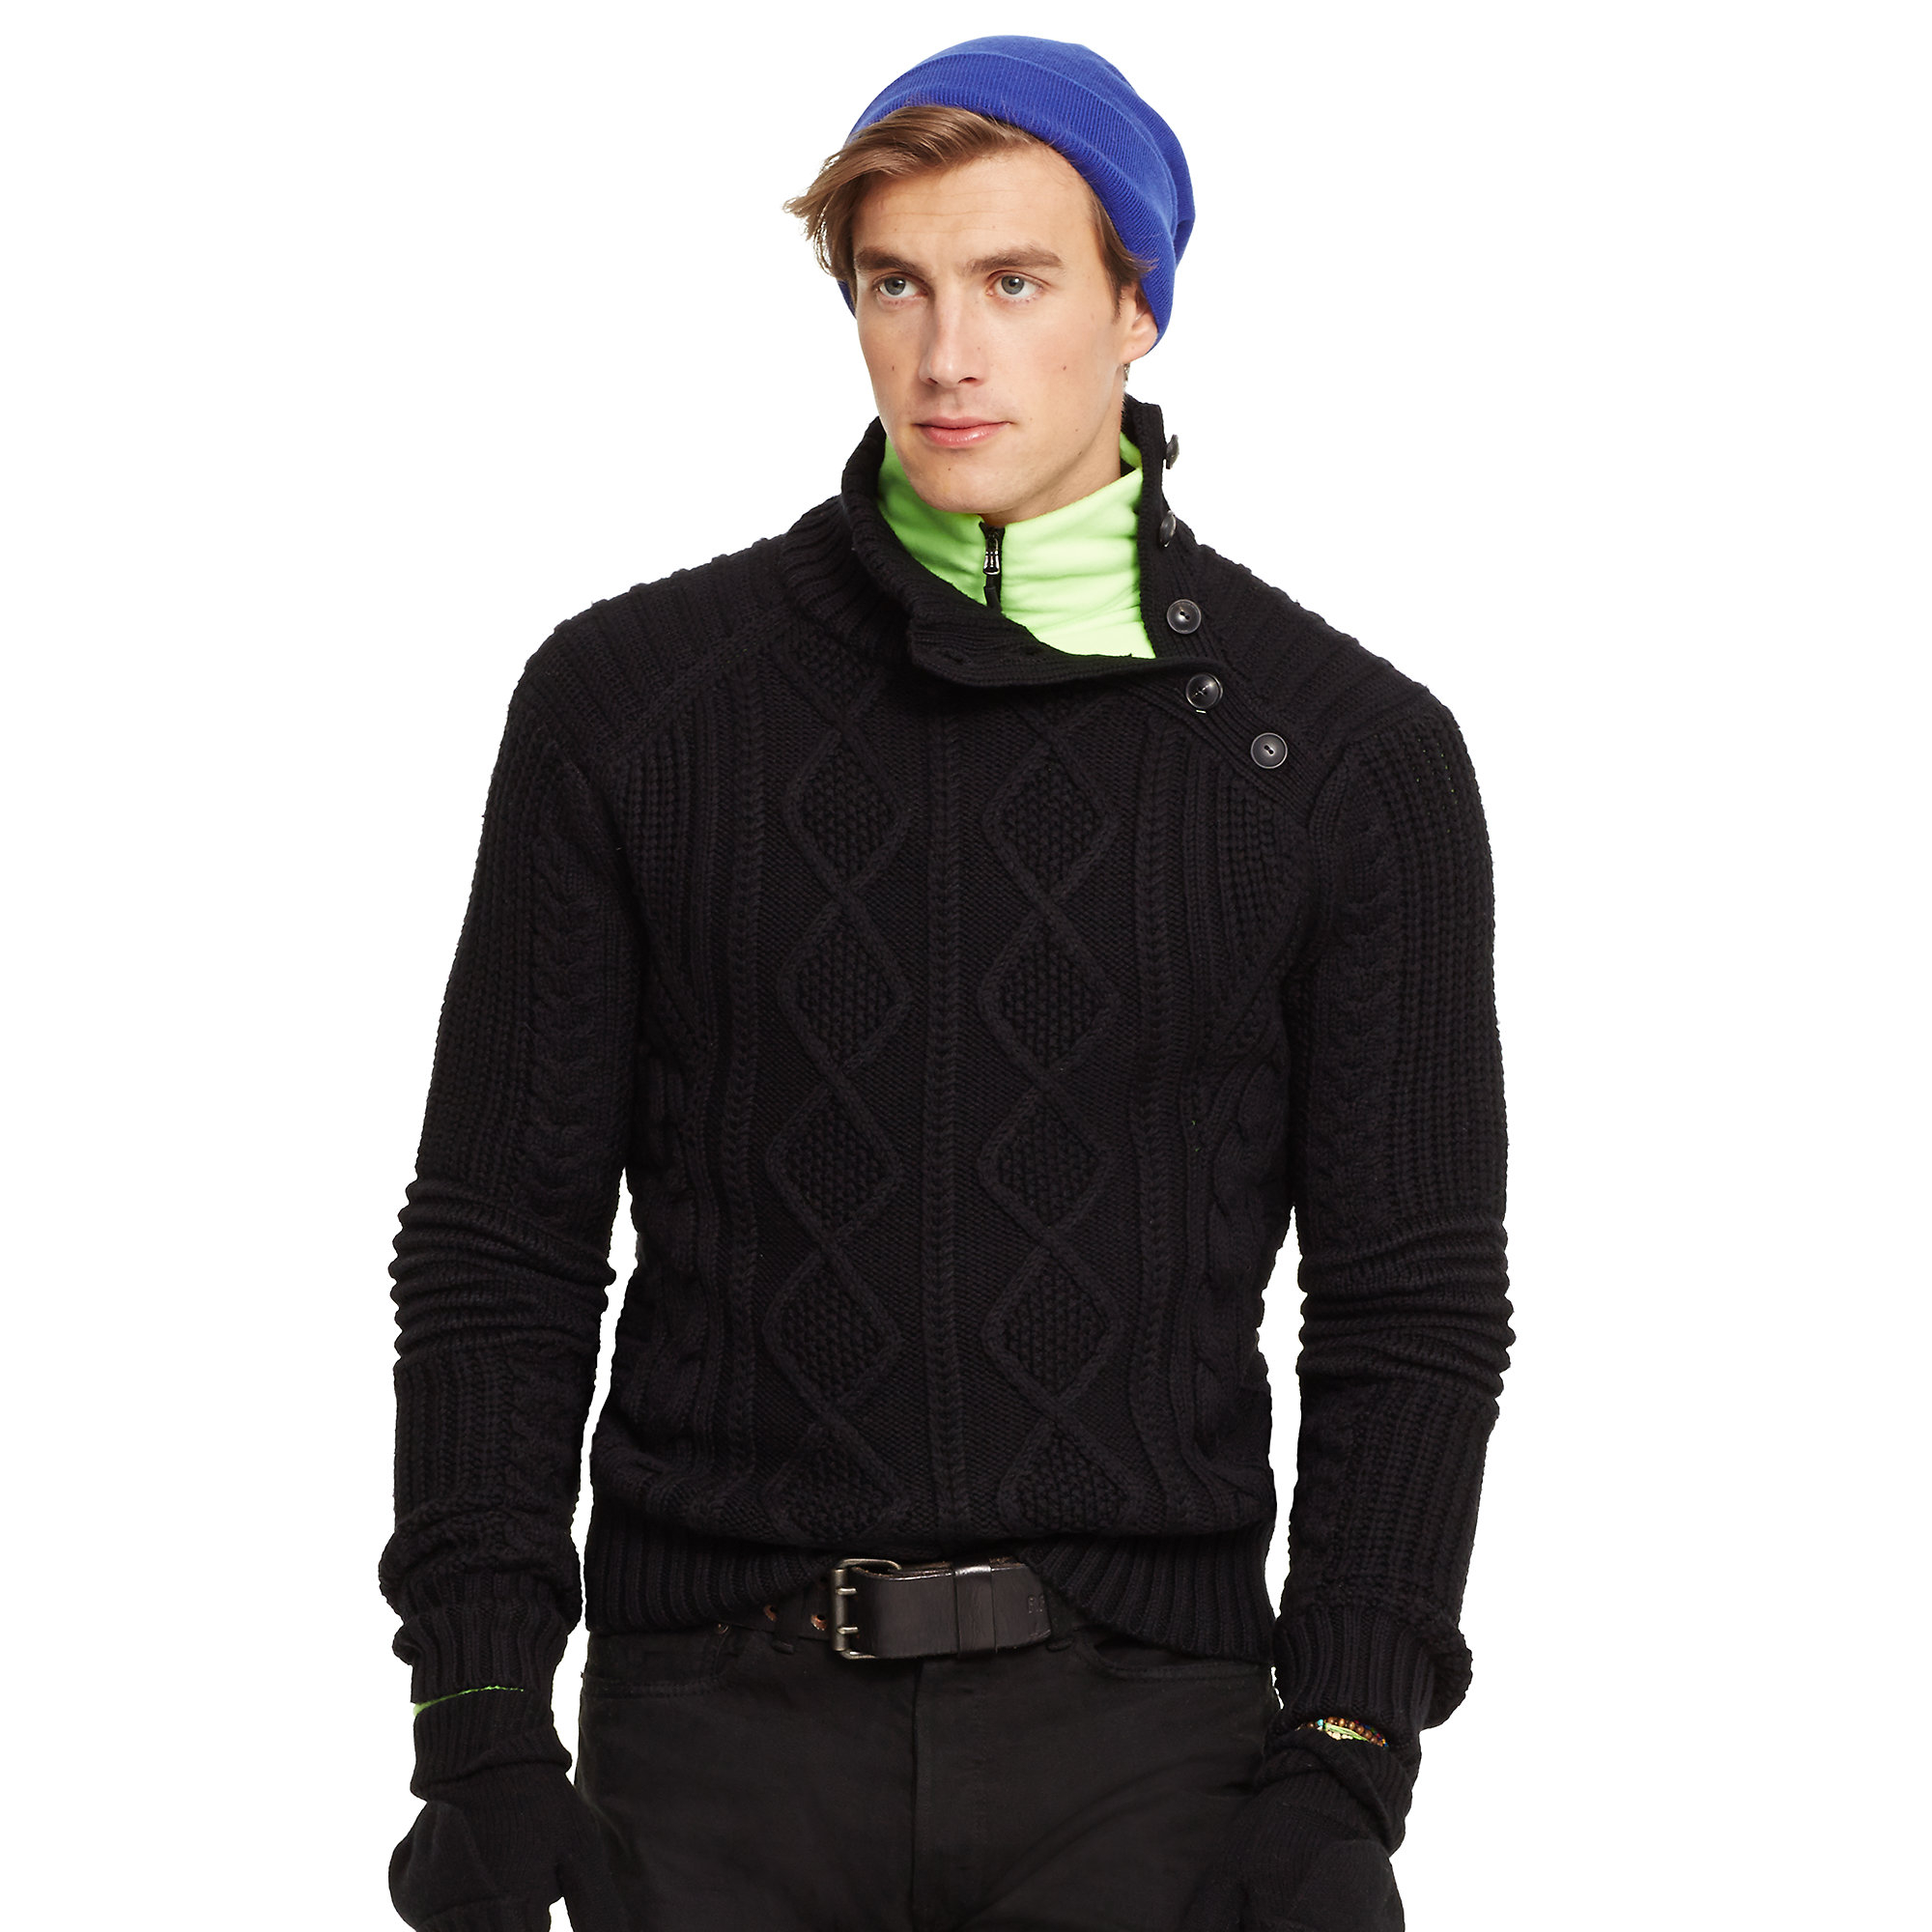 Polo ralph lauren Aran-Knit Merino Wool Sweater in Black ...